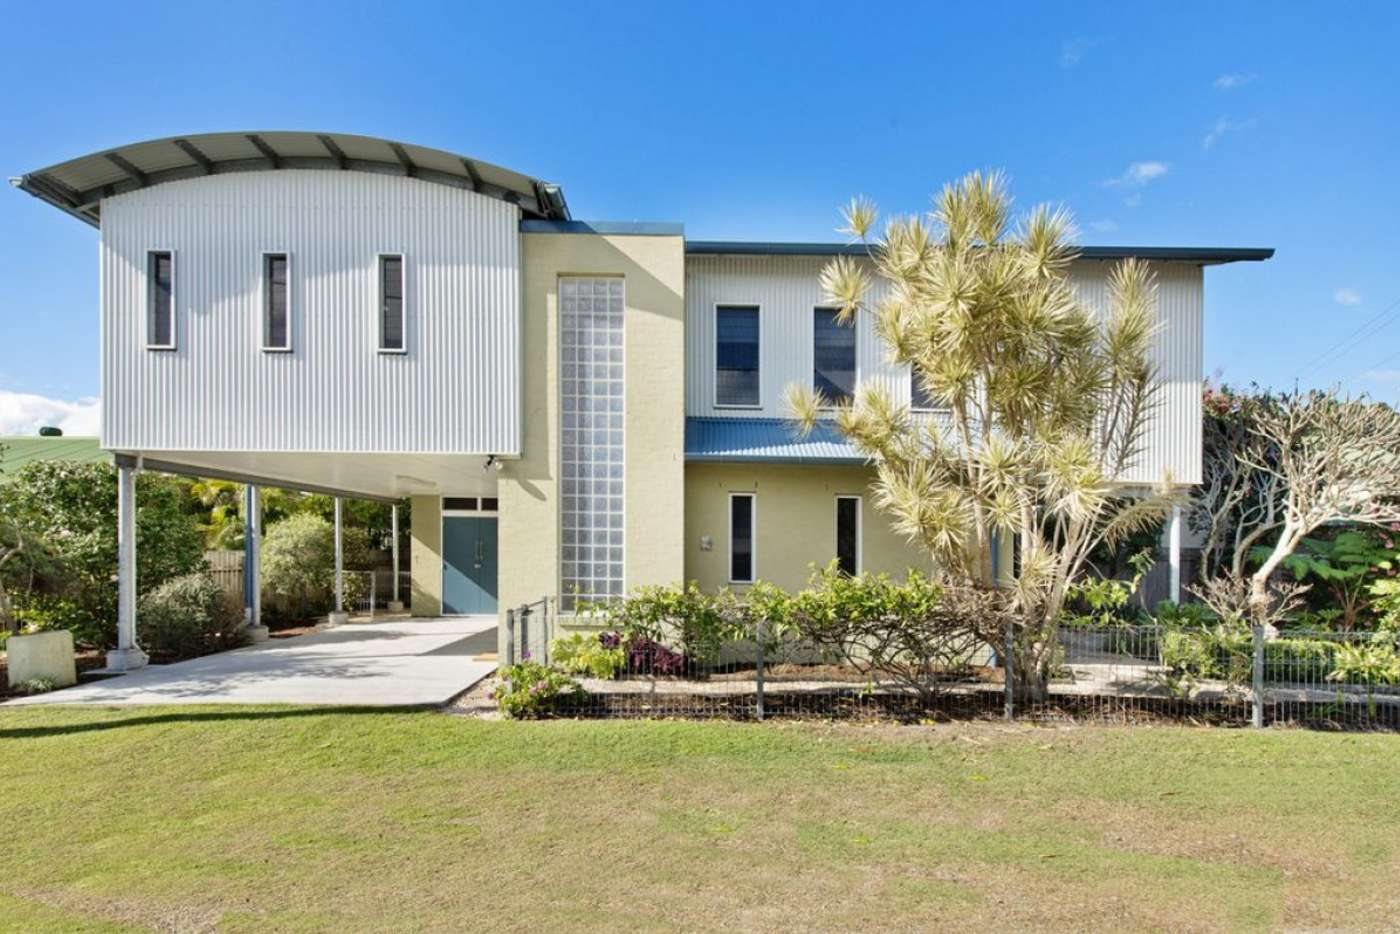 Main view of Homely house listing, 539 Ocean Drive, North Haven NSW 2443